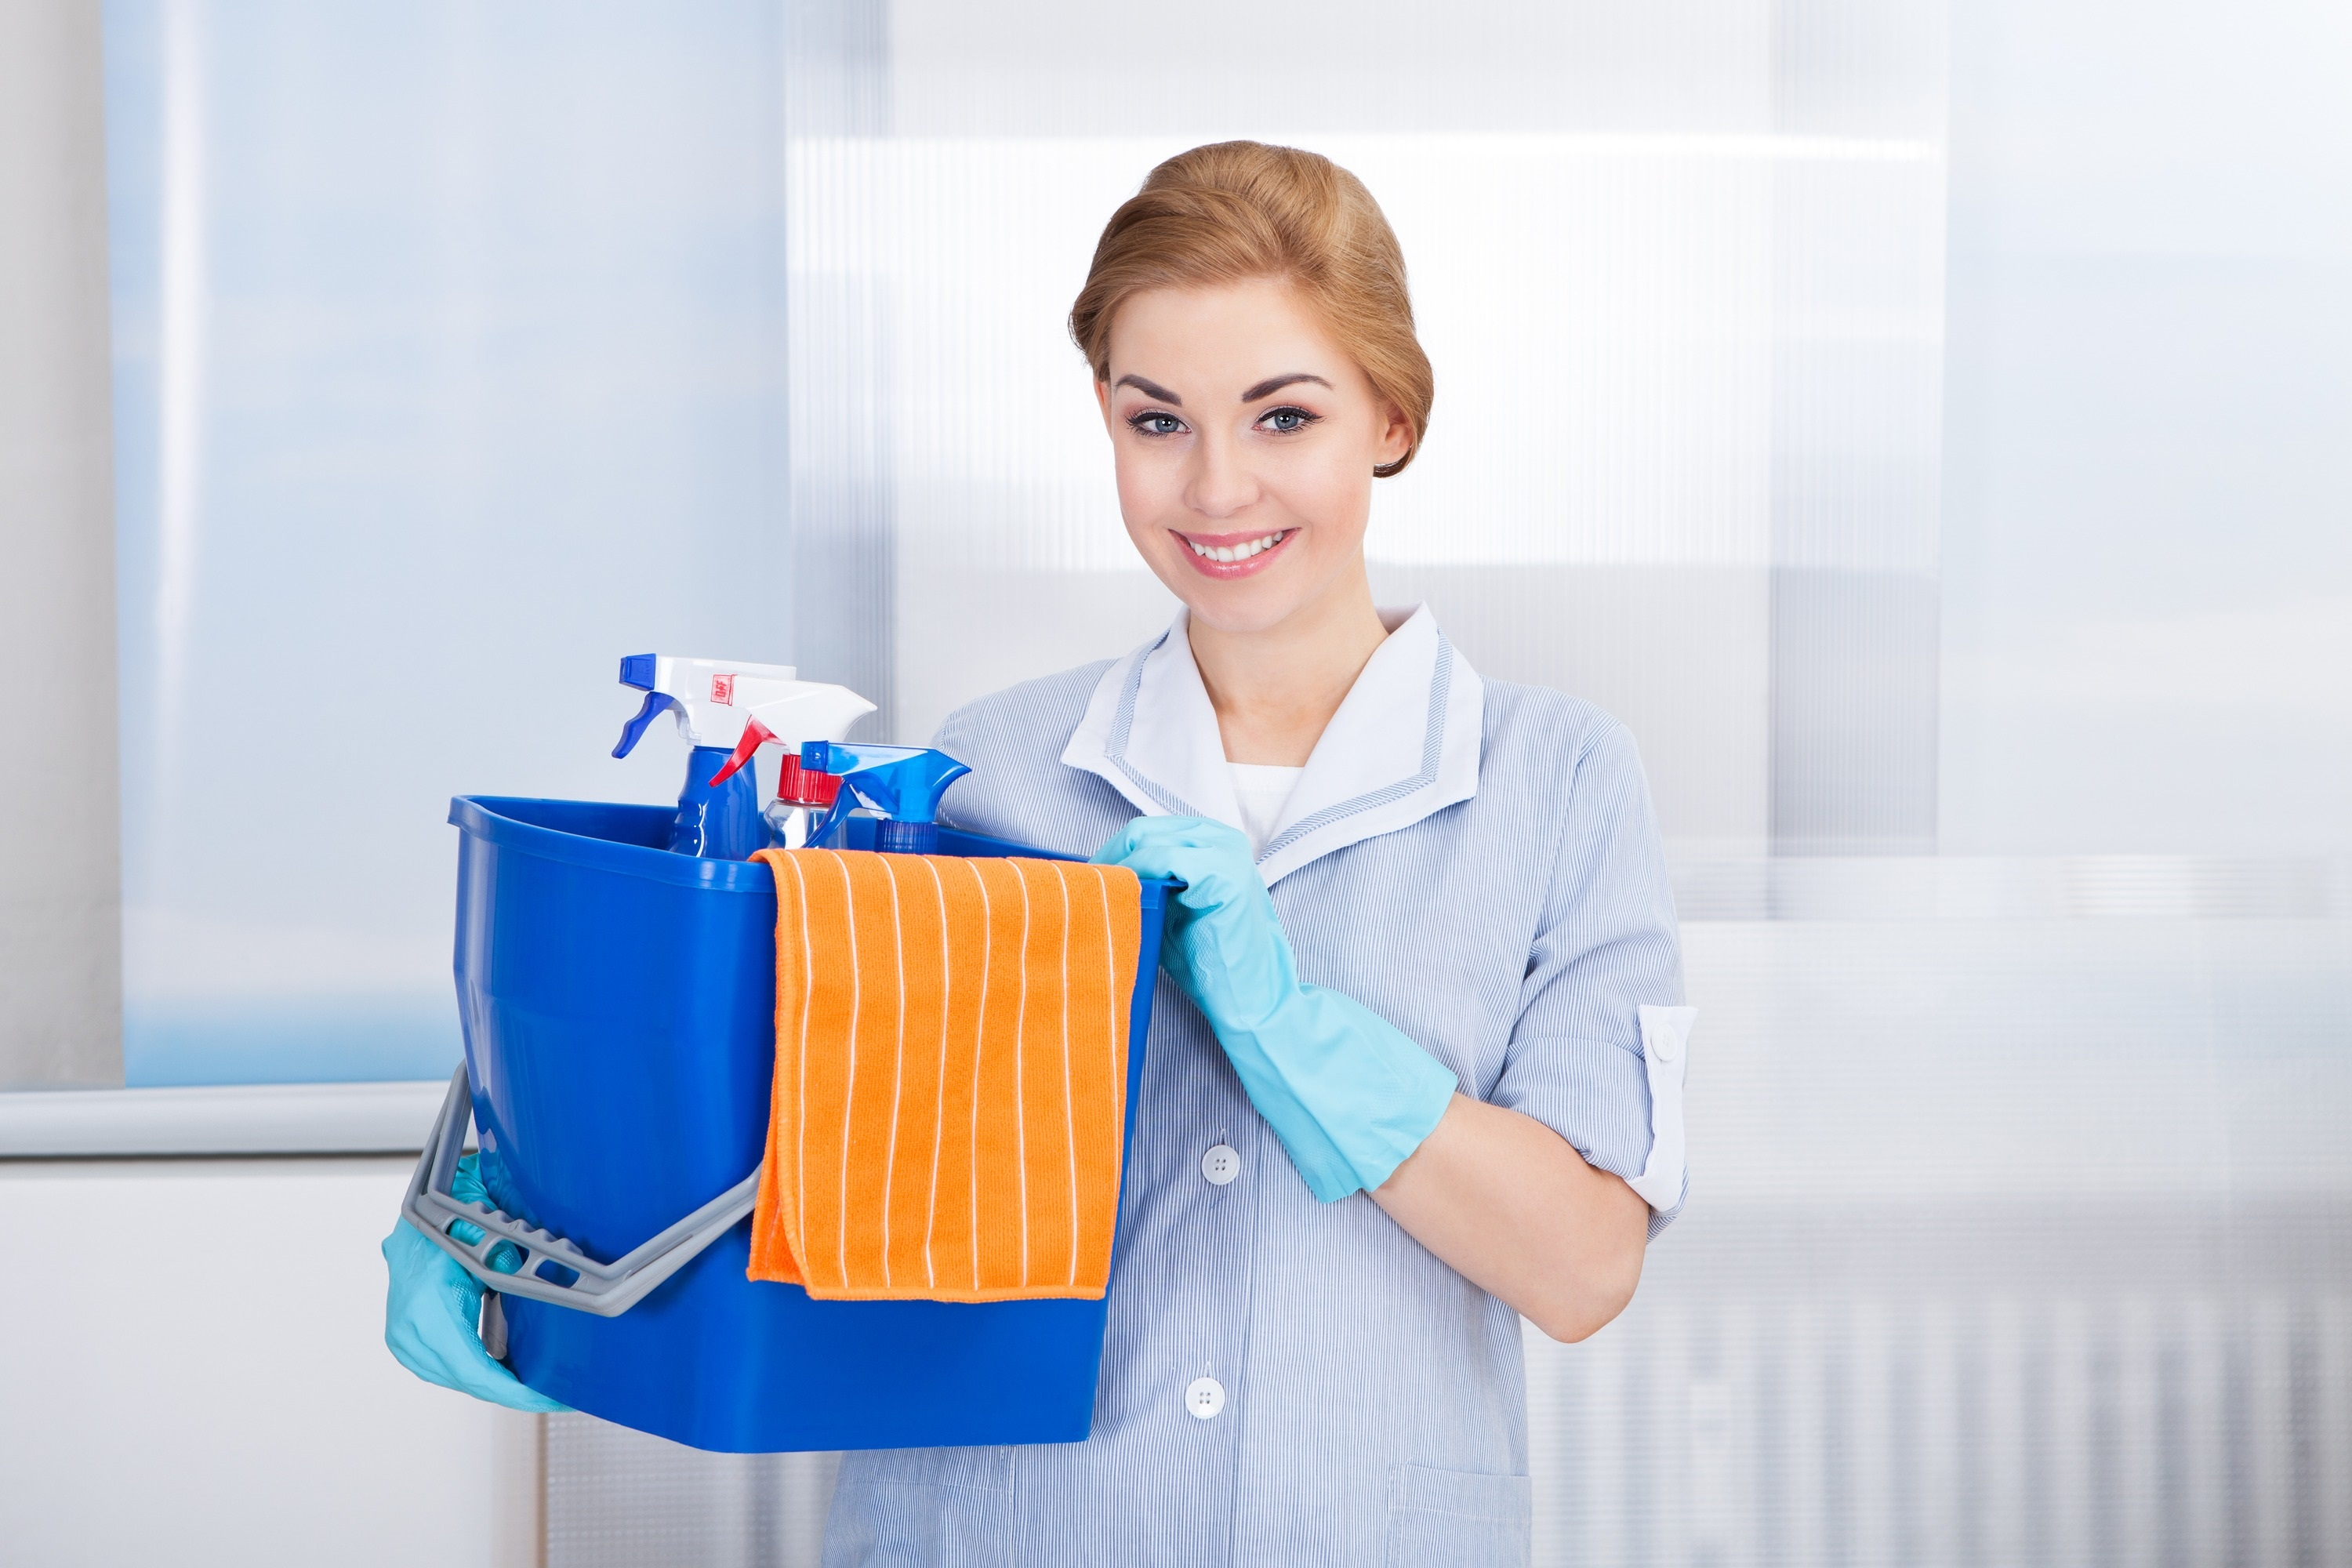 Cleaning Packages, Sensational Service Remarkable People, Maids Service,Home Cleaning, Office Maids, House maids, Cleaning Service, Office Cleaning, home cleaning, cleaning company, 15 hours per month